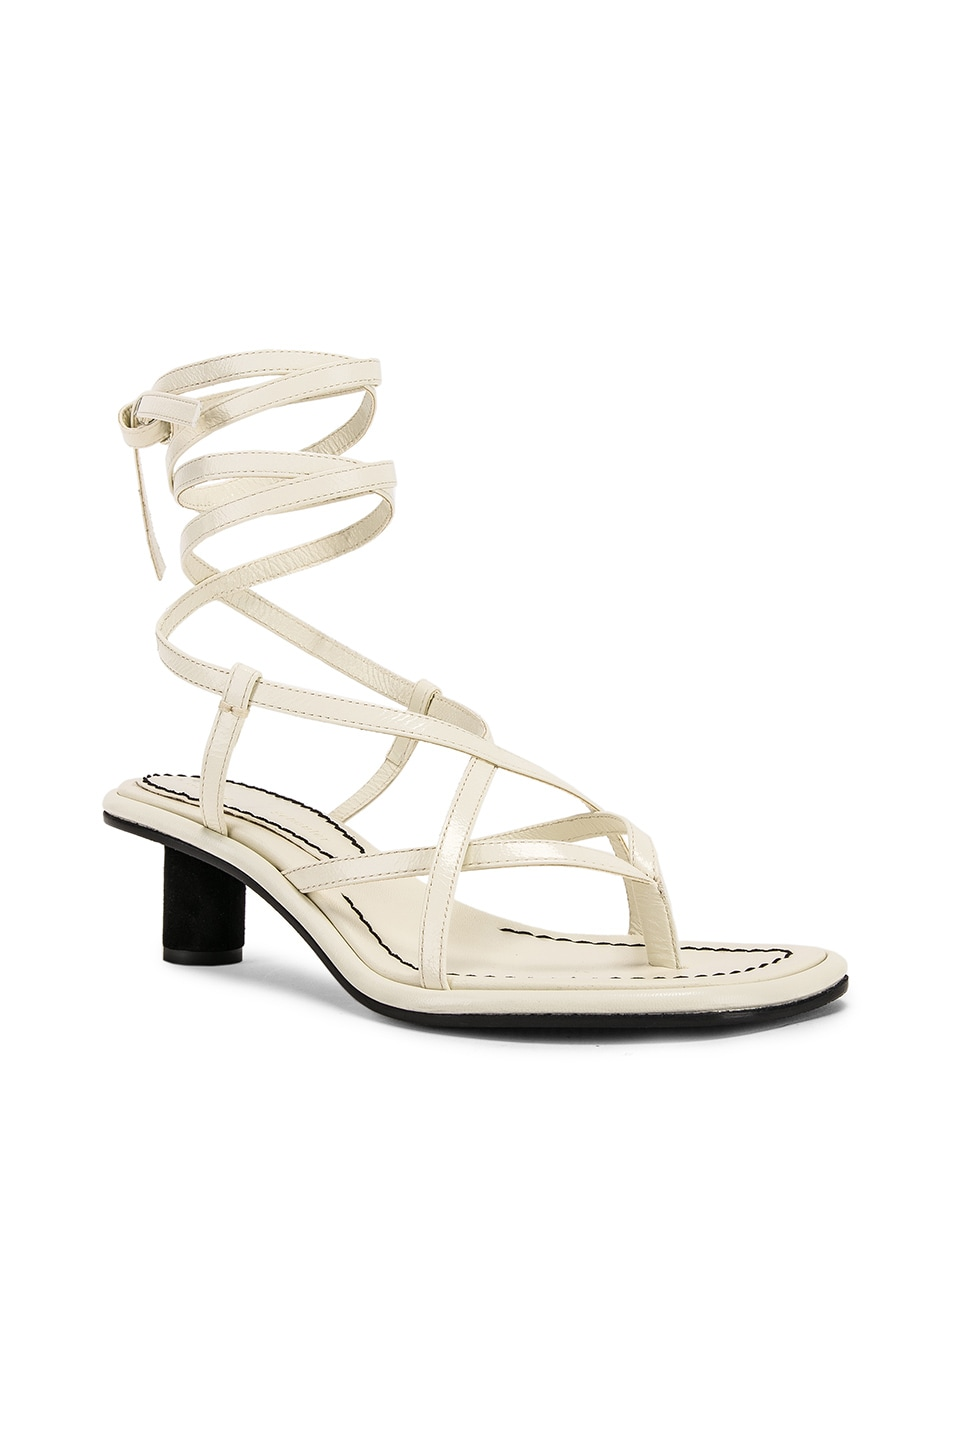 Image 2 of Proenza Schouler Gladiator Sandals in Ecru